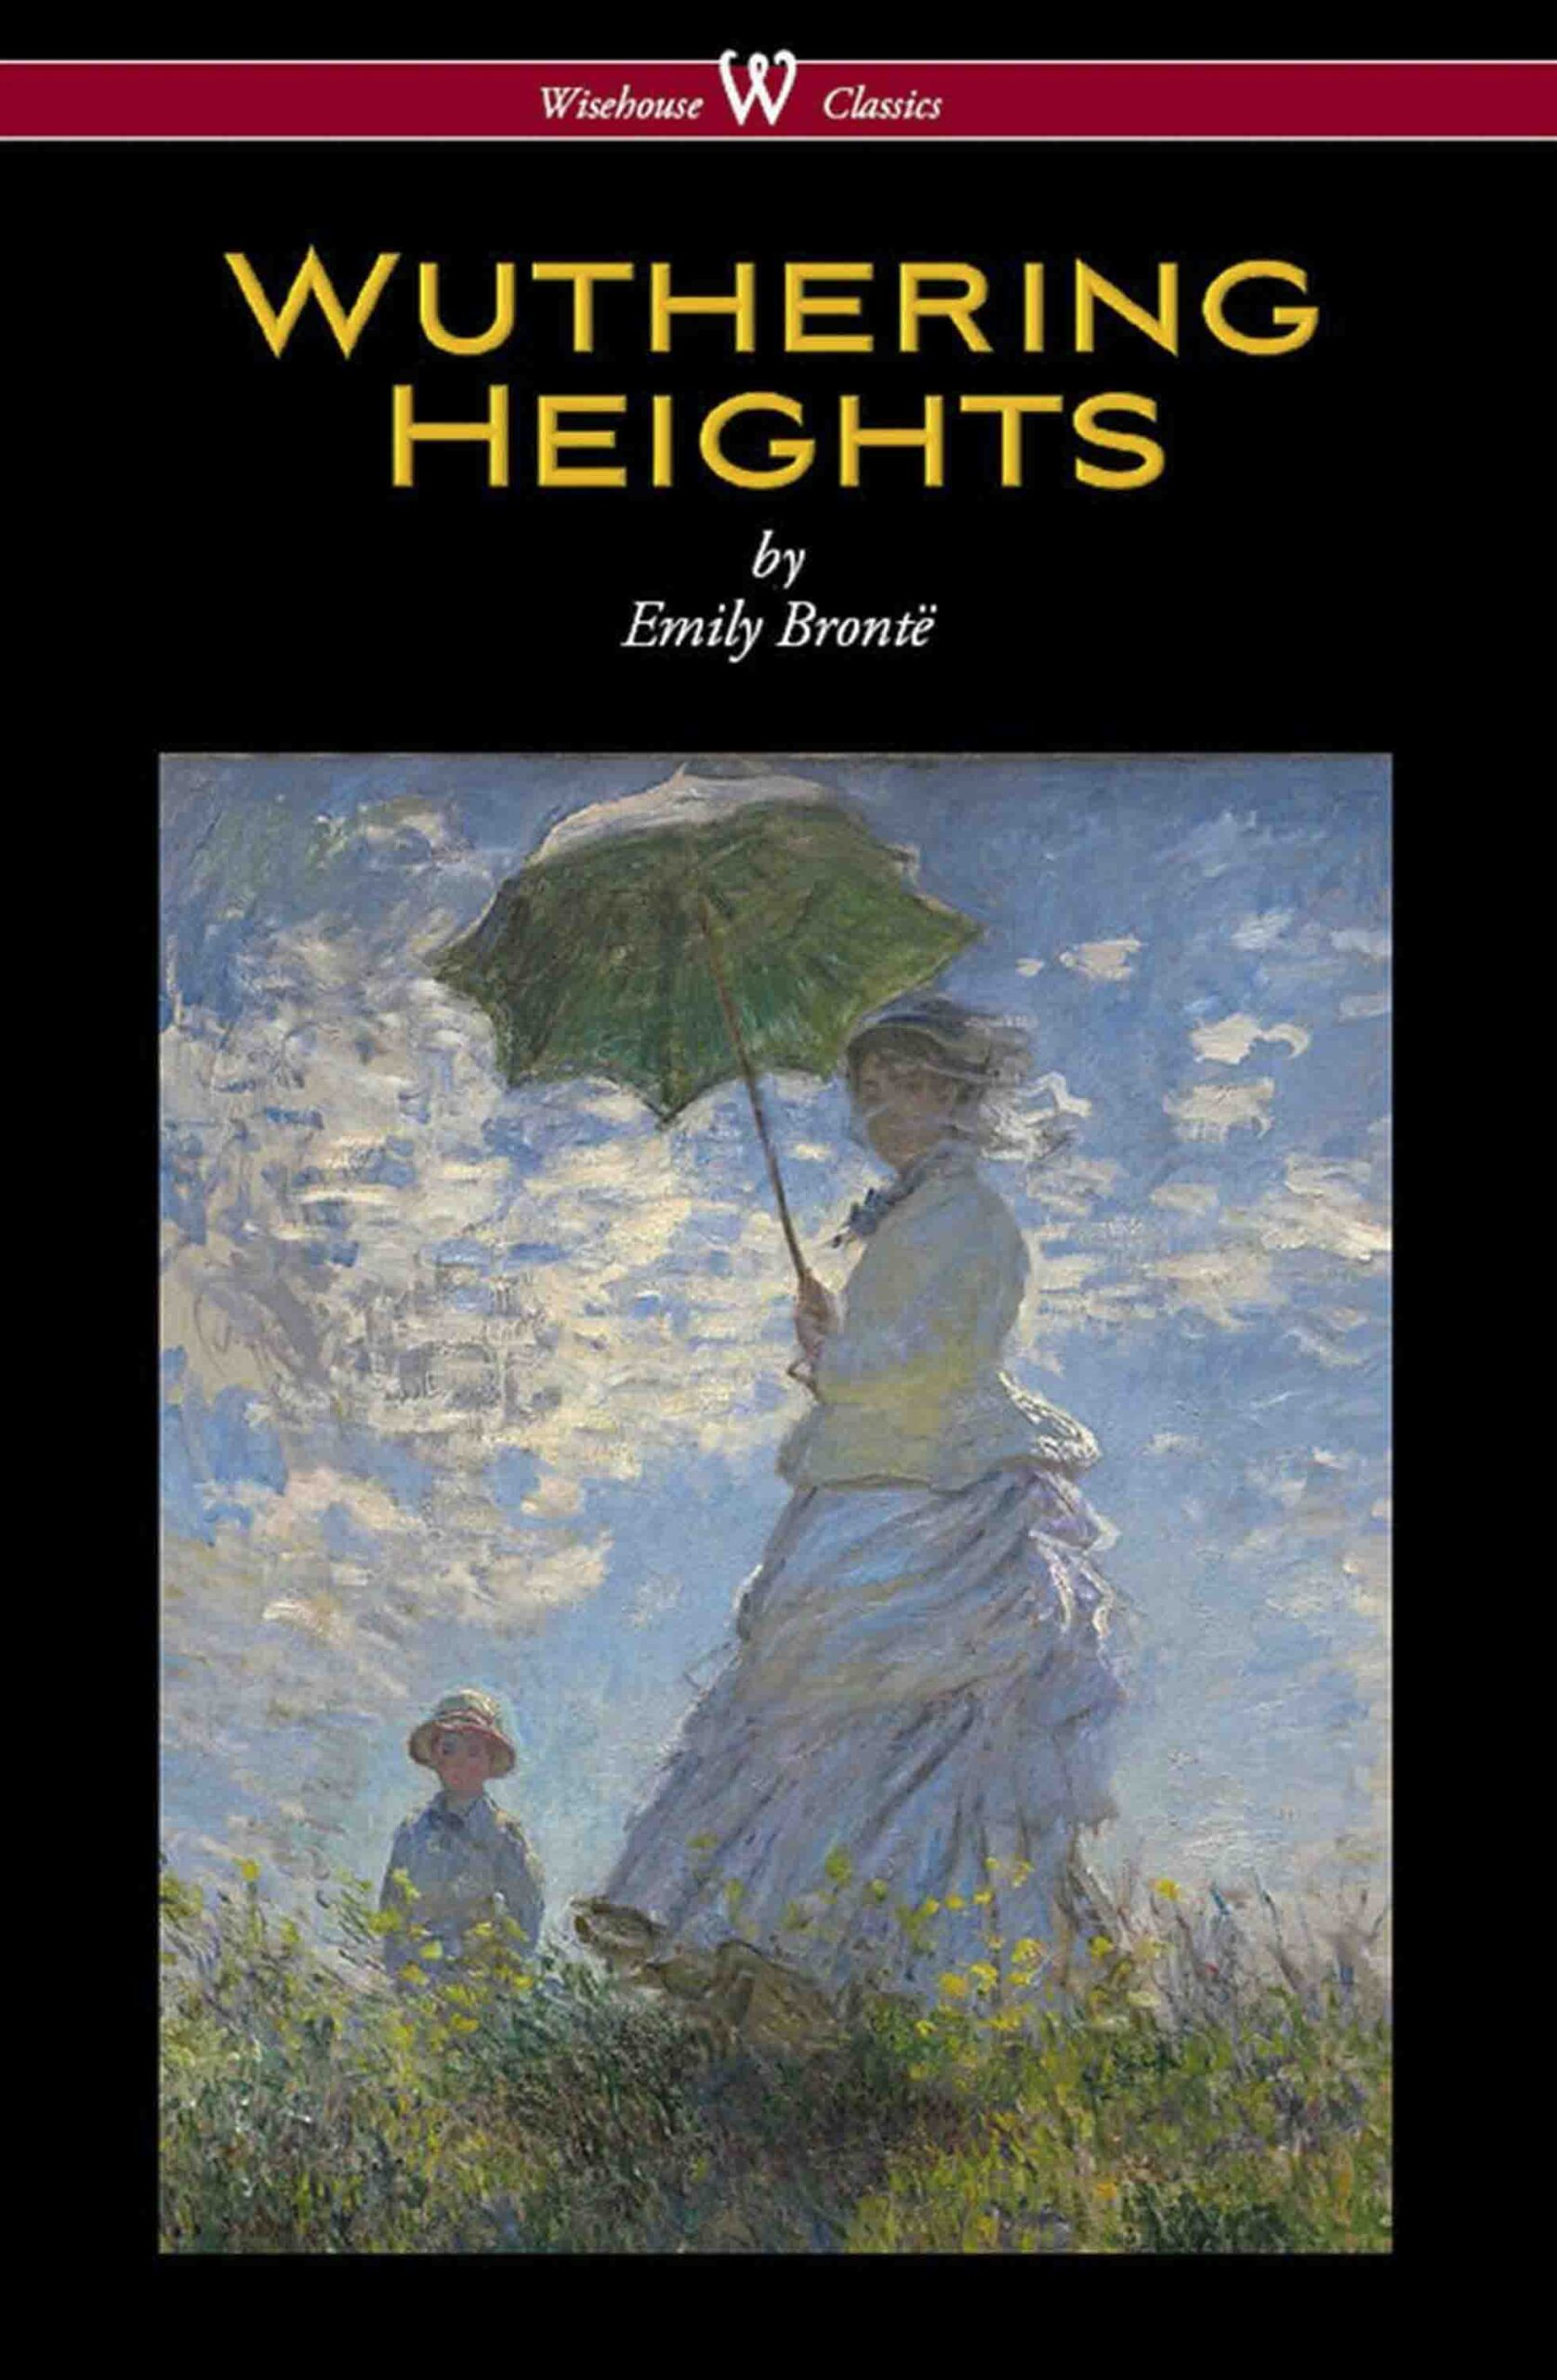 Wuthering Heights (Wisehouse Classics Edition)